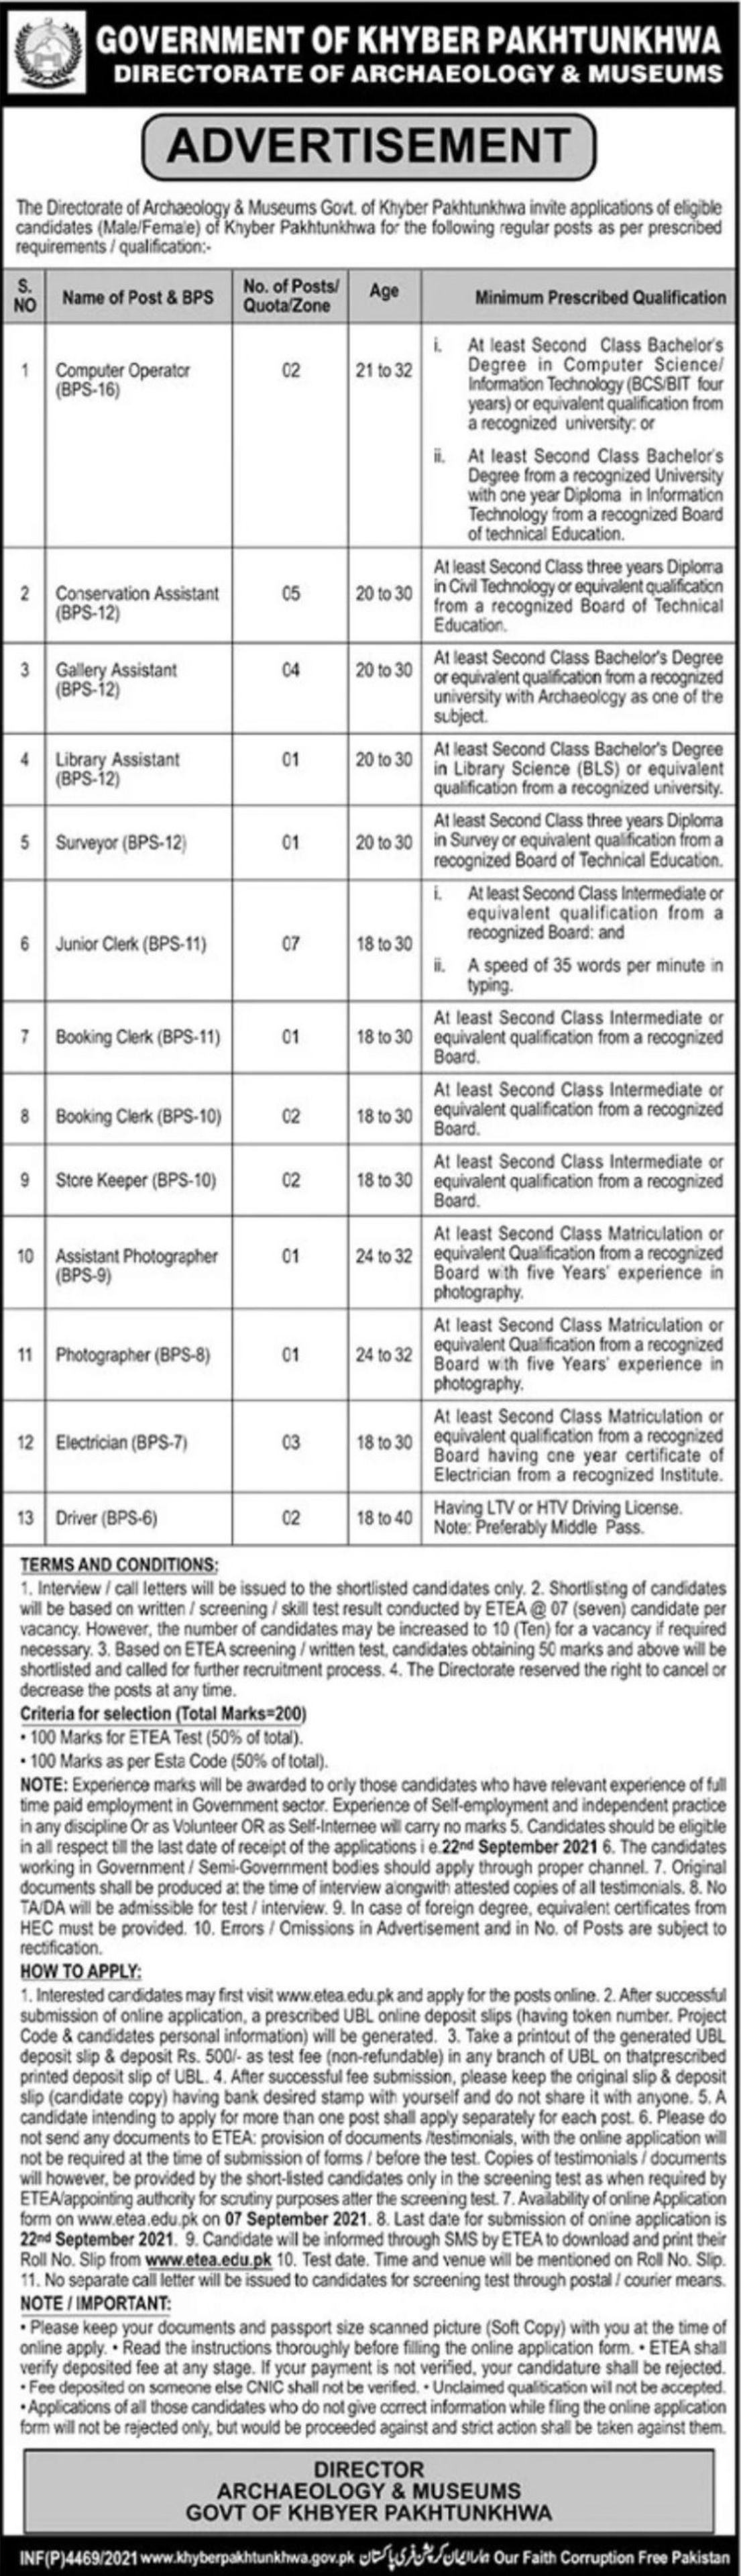 Government of Khyber Pakhtunkhwa Directorate of Archaeology & Museums Vacancies 2021 3